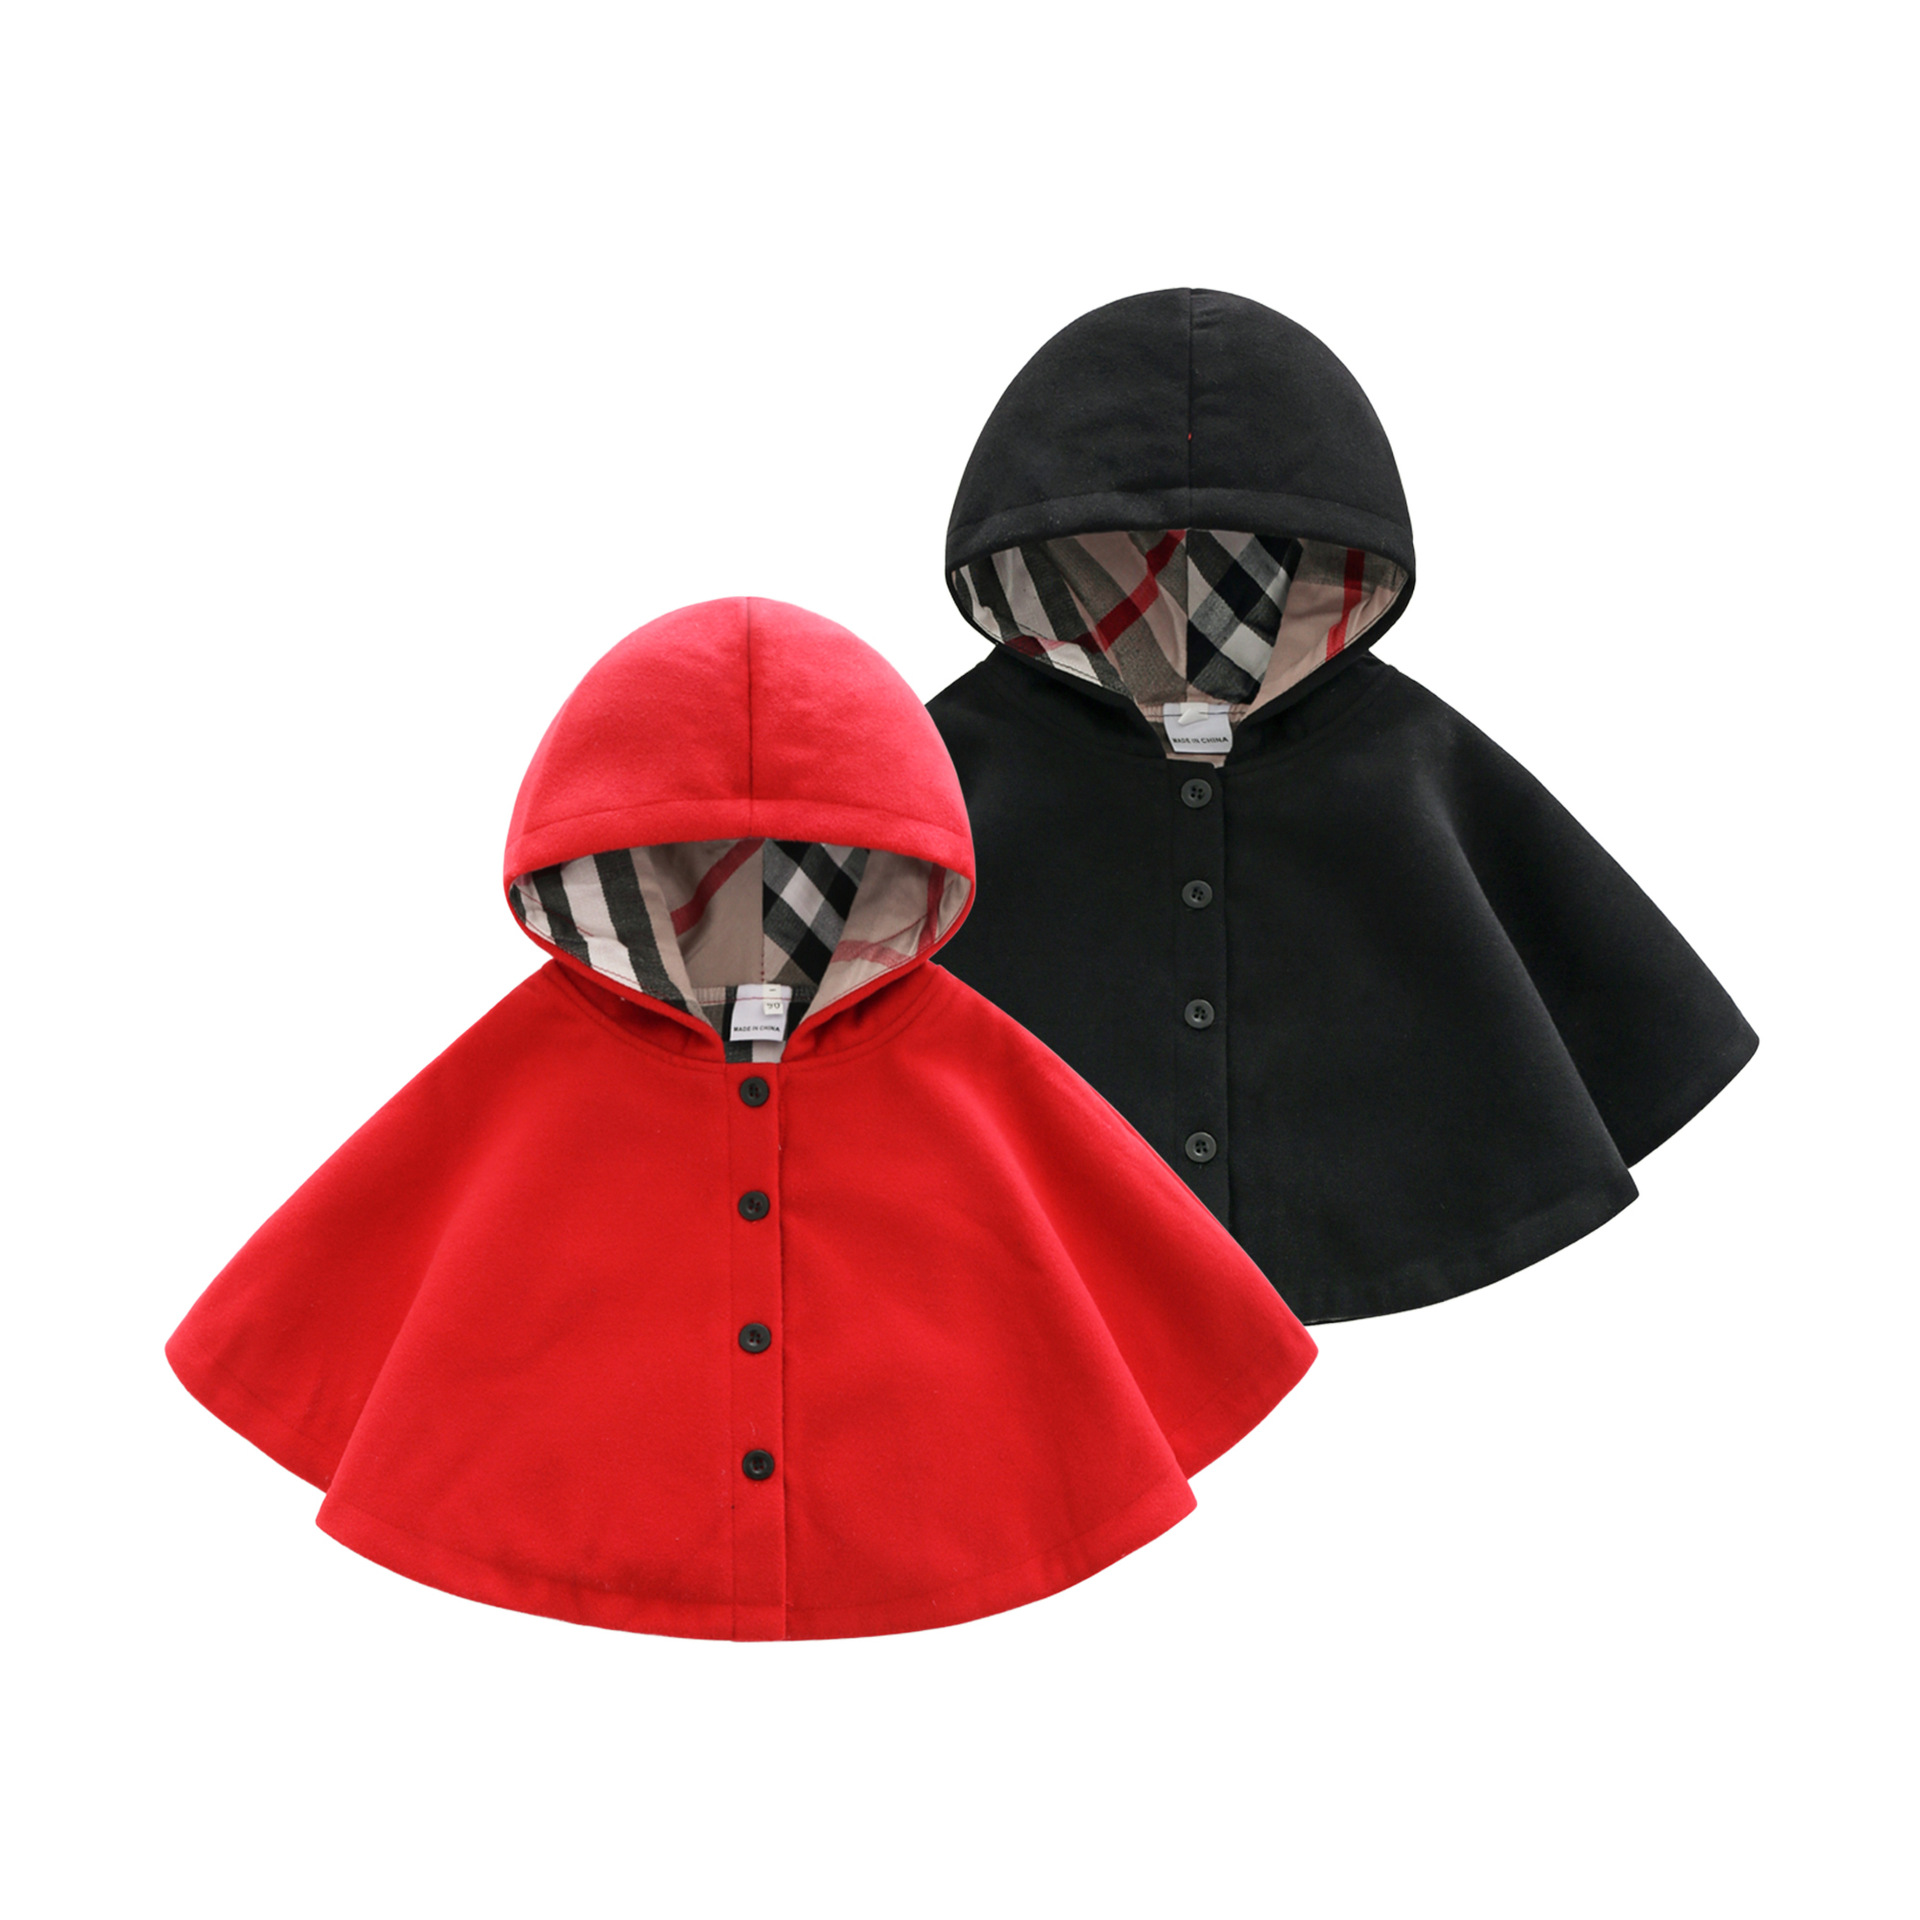 0546aadb36e 2019 winter spring fashion kids baby cape pattern black red cotton hooded  plaid girls Coat jackets